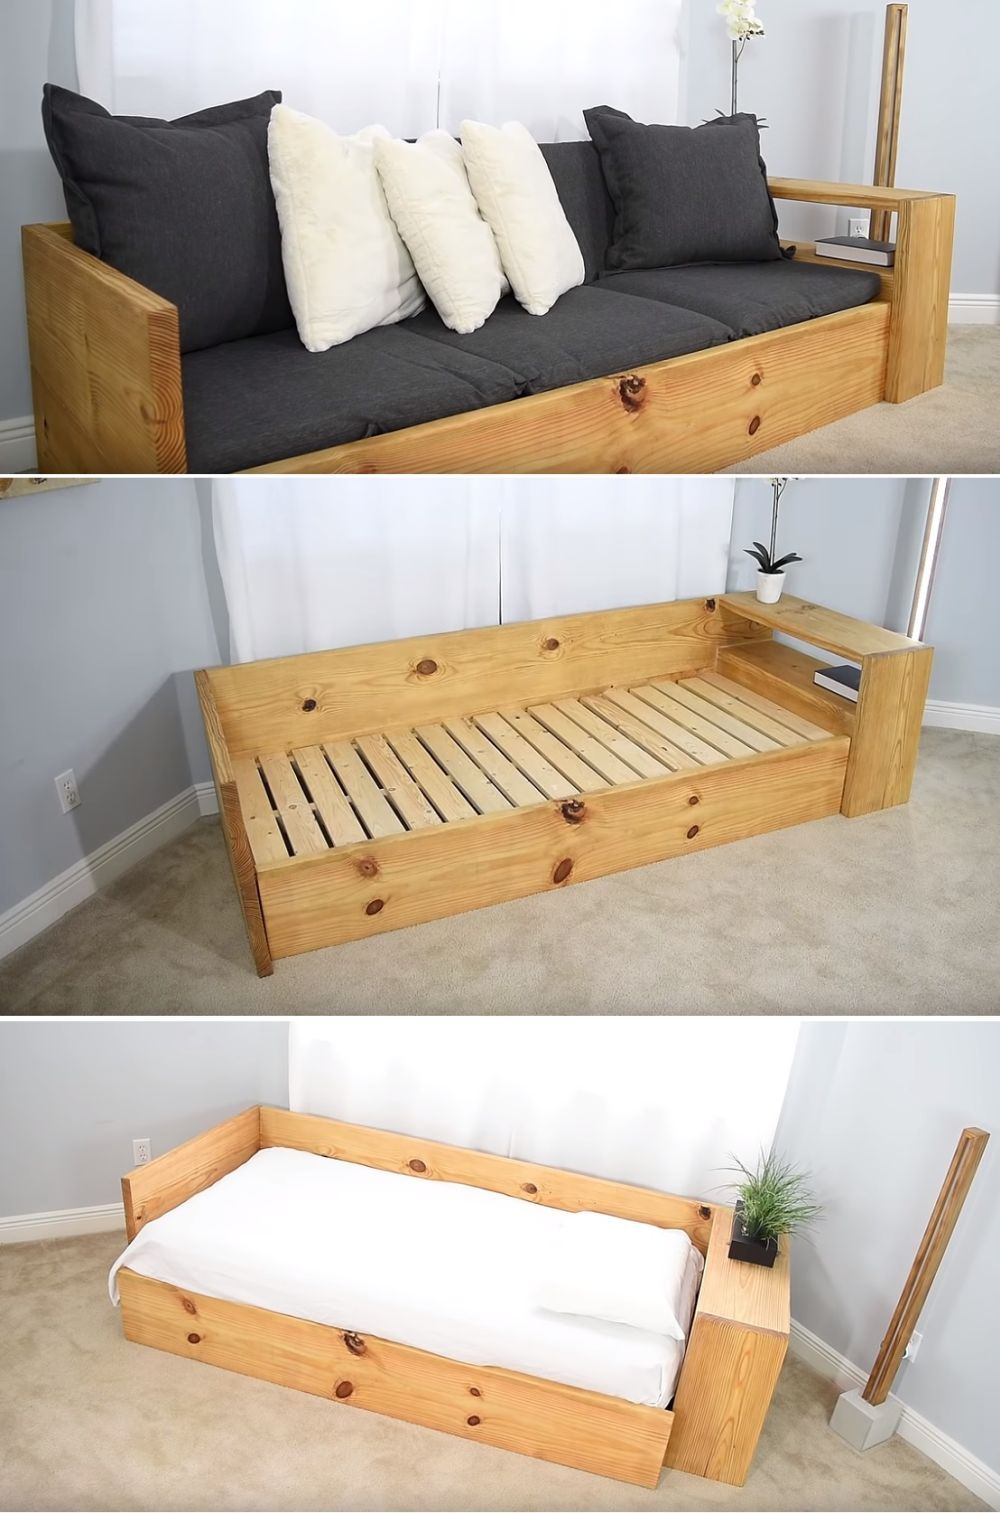 10 easy ways to build a diy couch without breaking the